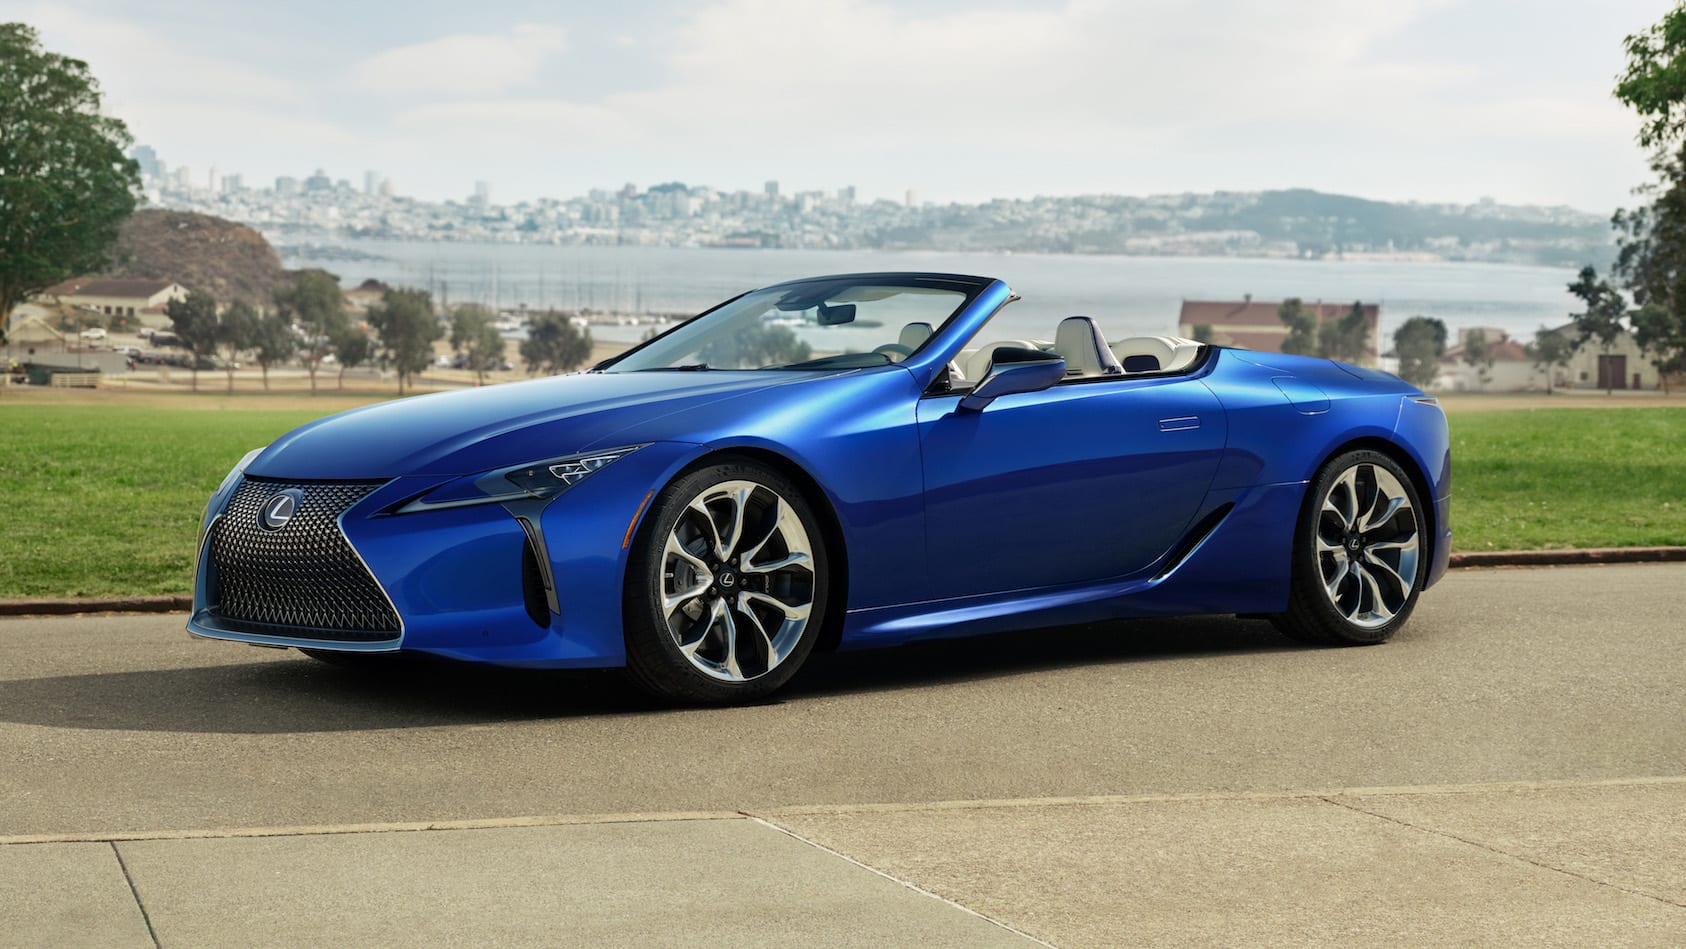 2020 Lexus Lc500 Convertible Revealed Confirmed For Australia Caradvice